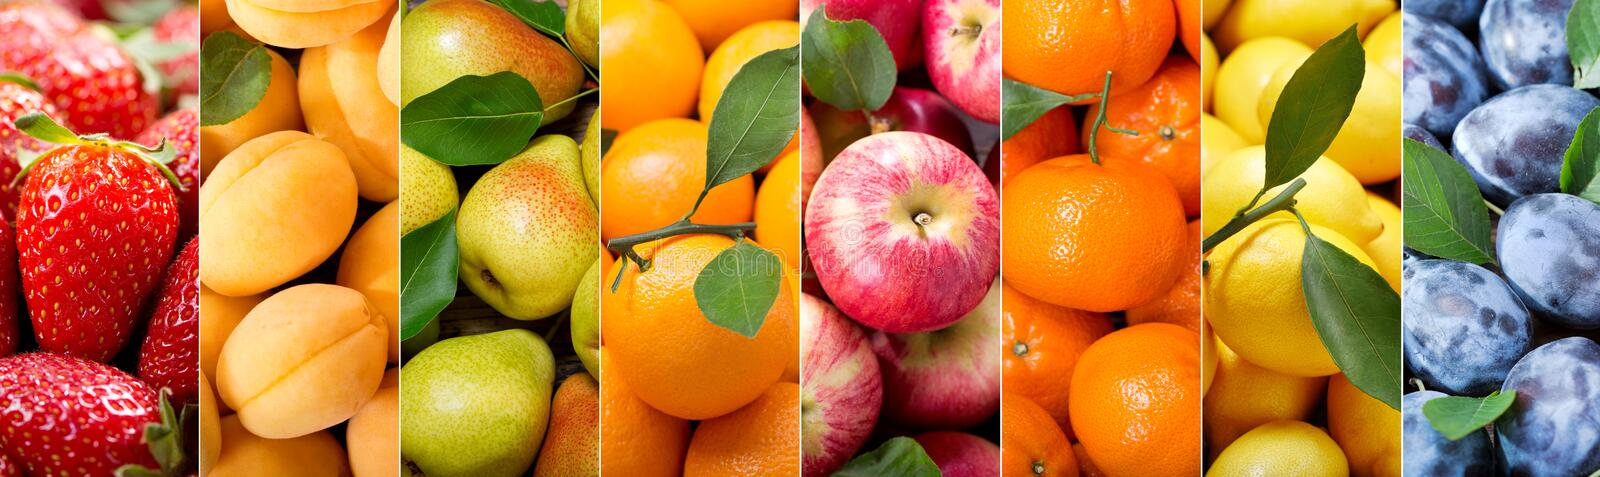 Fruit collage of various types fruits stock photo